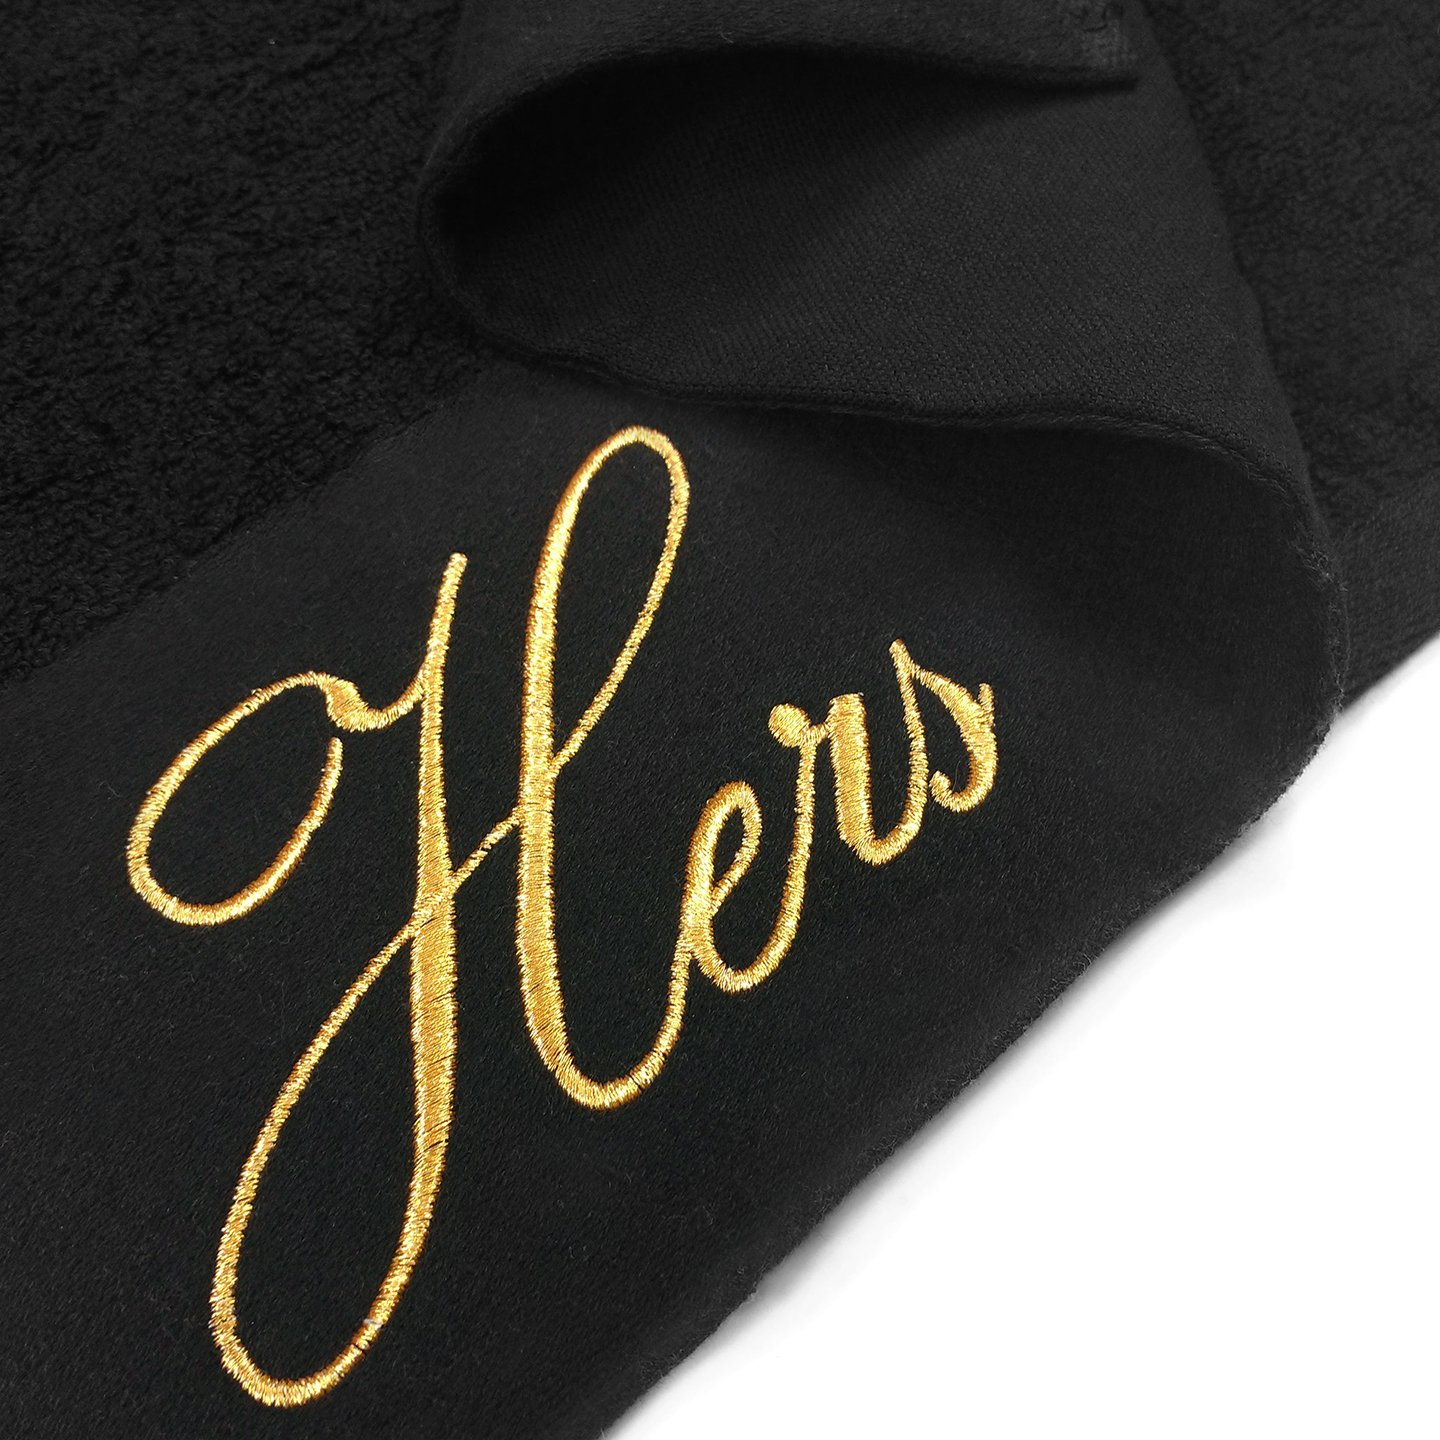 Kaufman - Terry Cloth Bathrobes 100% Cotton - His and Hers Embroidered Velour Shawl Set of Robes with His and Hers Black Towel Set 30''x58'' 4-PK by Ben Kaufman Sales (Image #7)